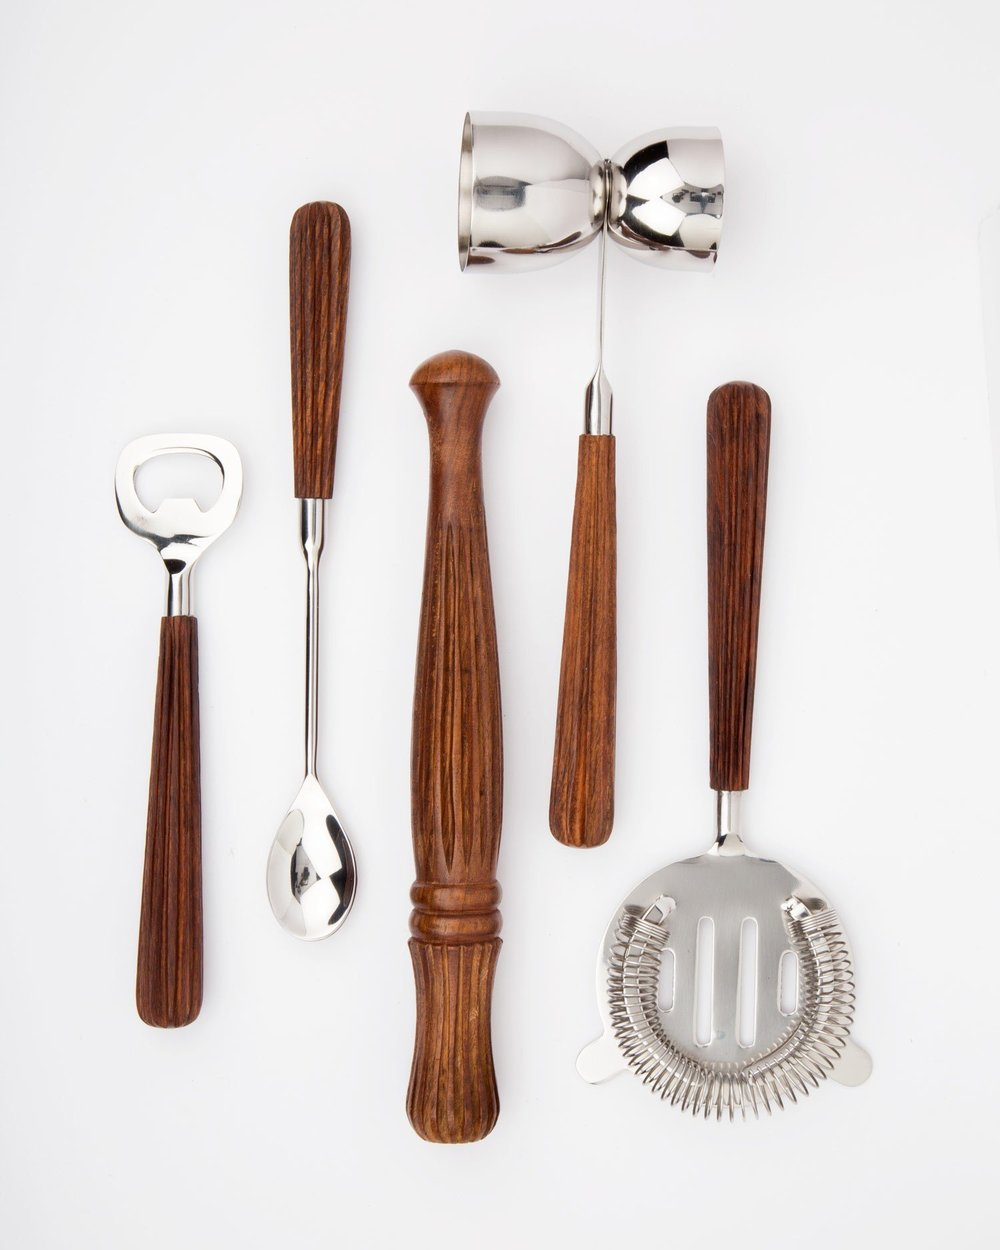 Hand Carved Craft Bar Tools - Ten Thousand Villages |$70 | Use 'STYLEMEFAIR25' for 25% off